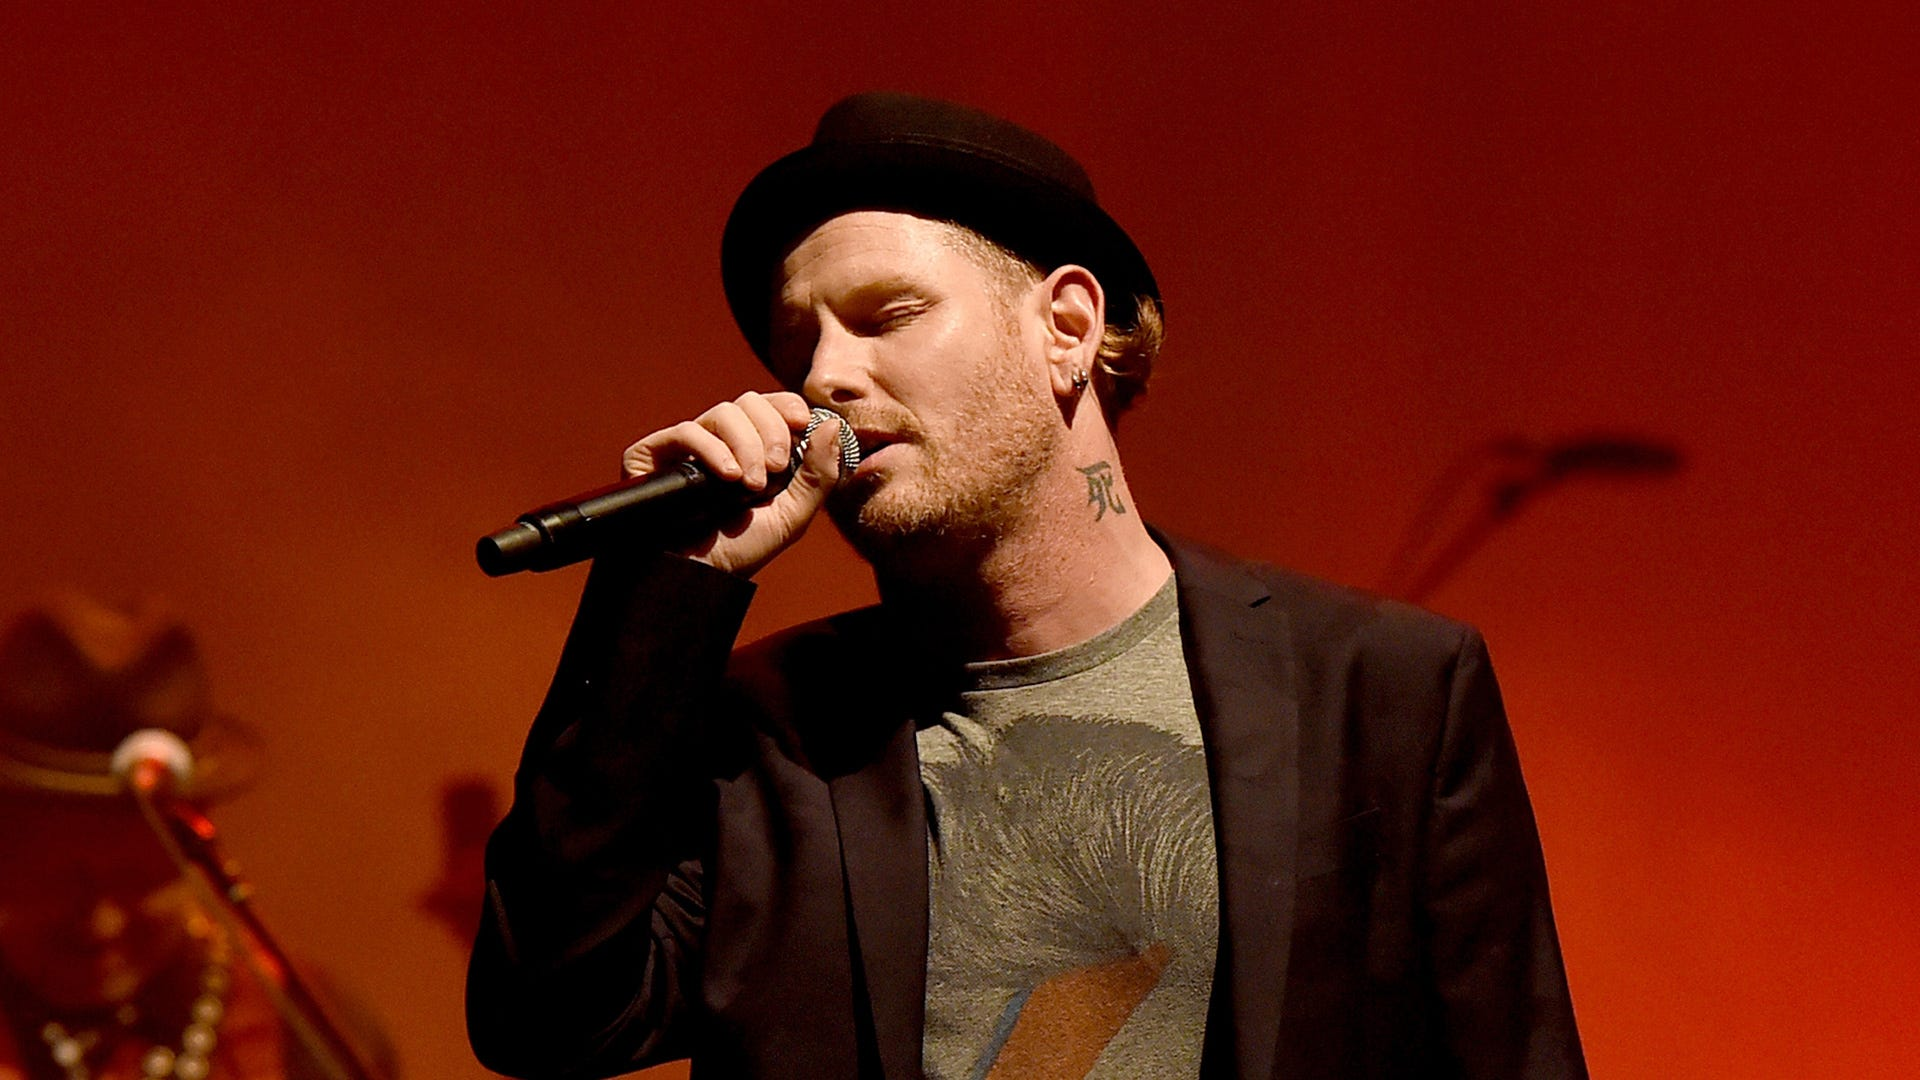 Corey Taylor 'very, very sick' with COVID-19 despite being vaccinated